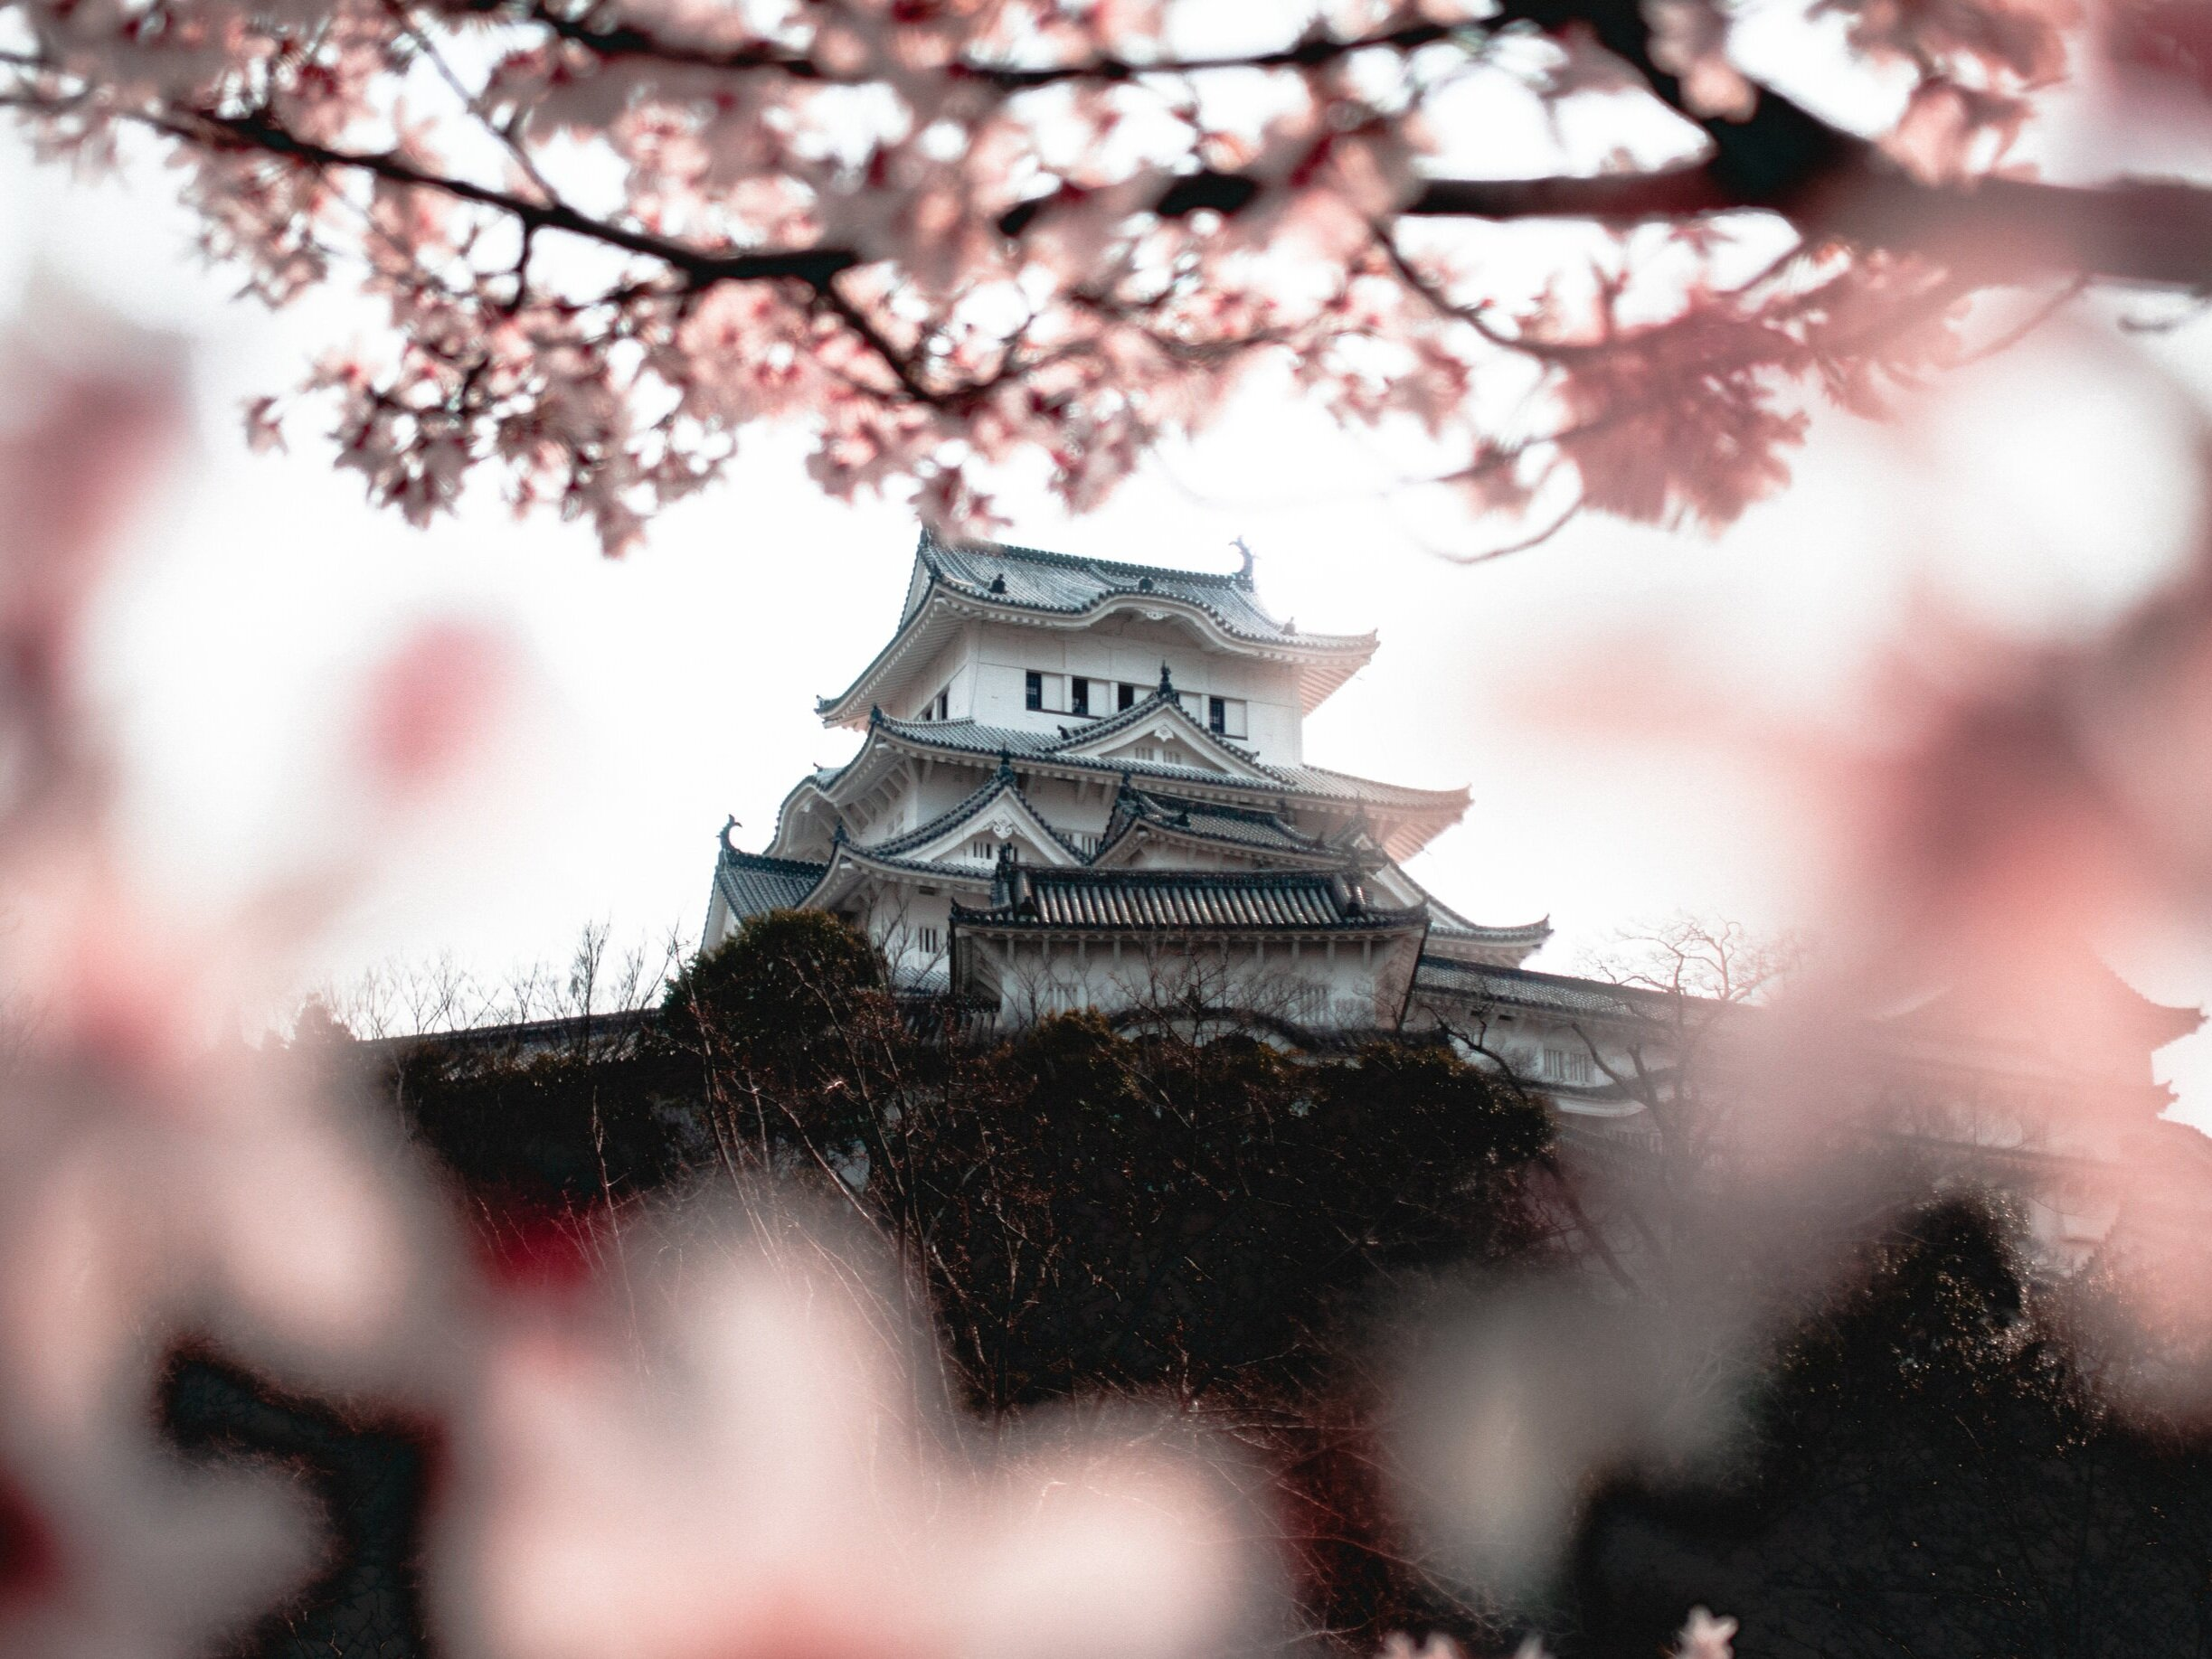 We rented bikes for super cheap and rode around Himeji Castle! Oh yeah, and we were there for Sakura (cherry blossom) season!